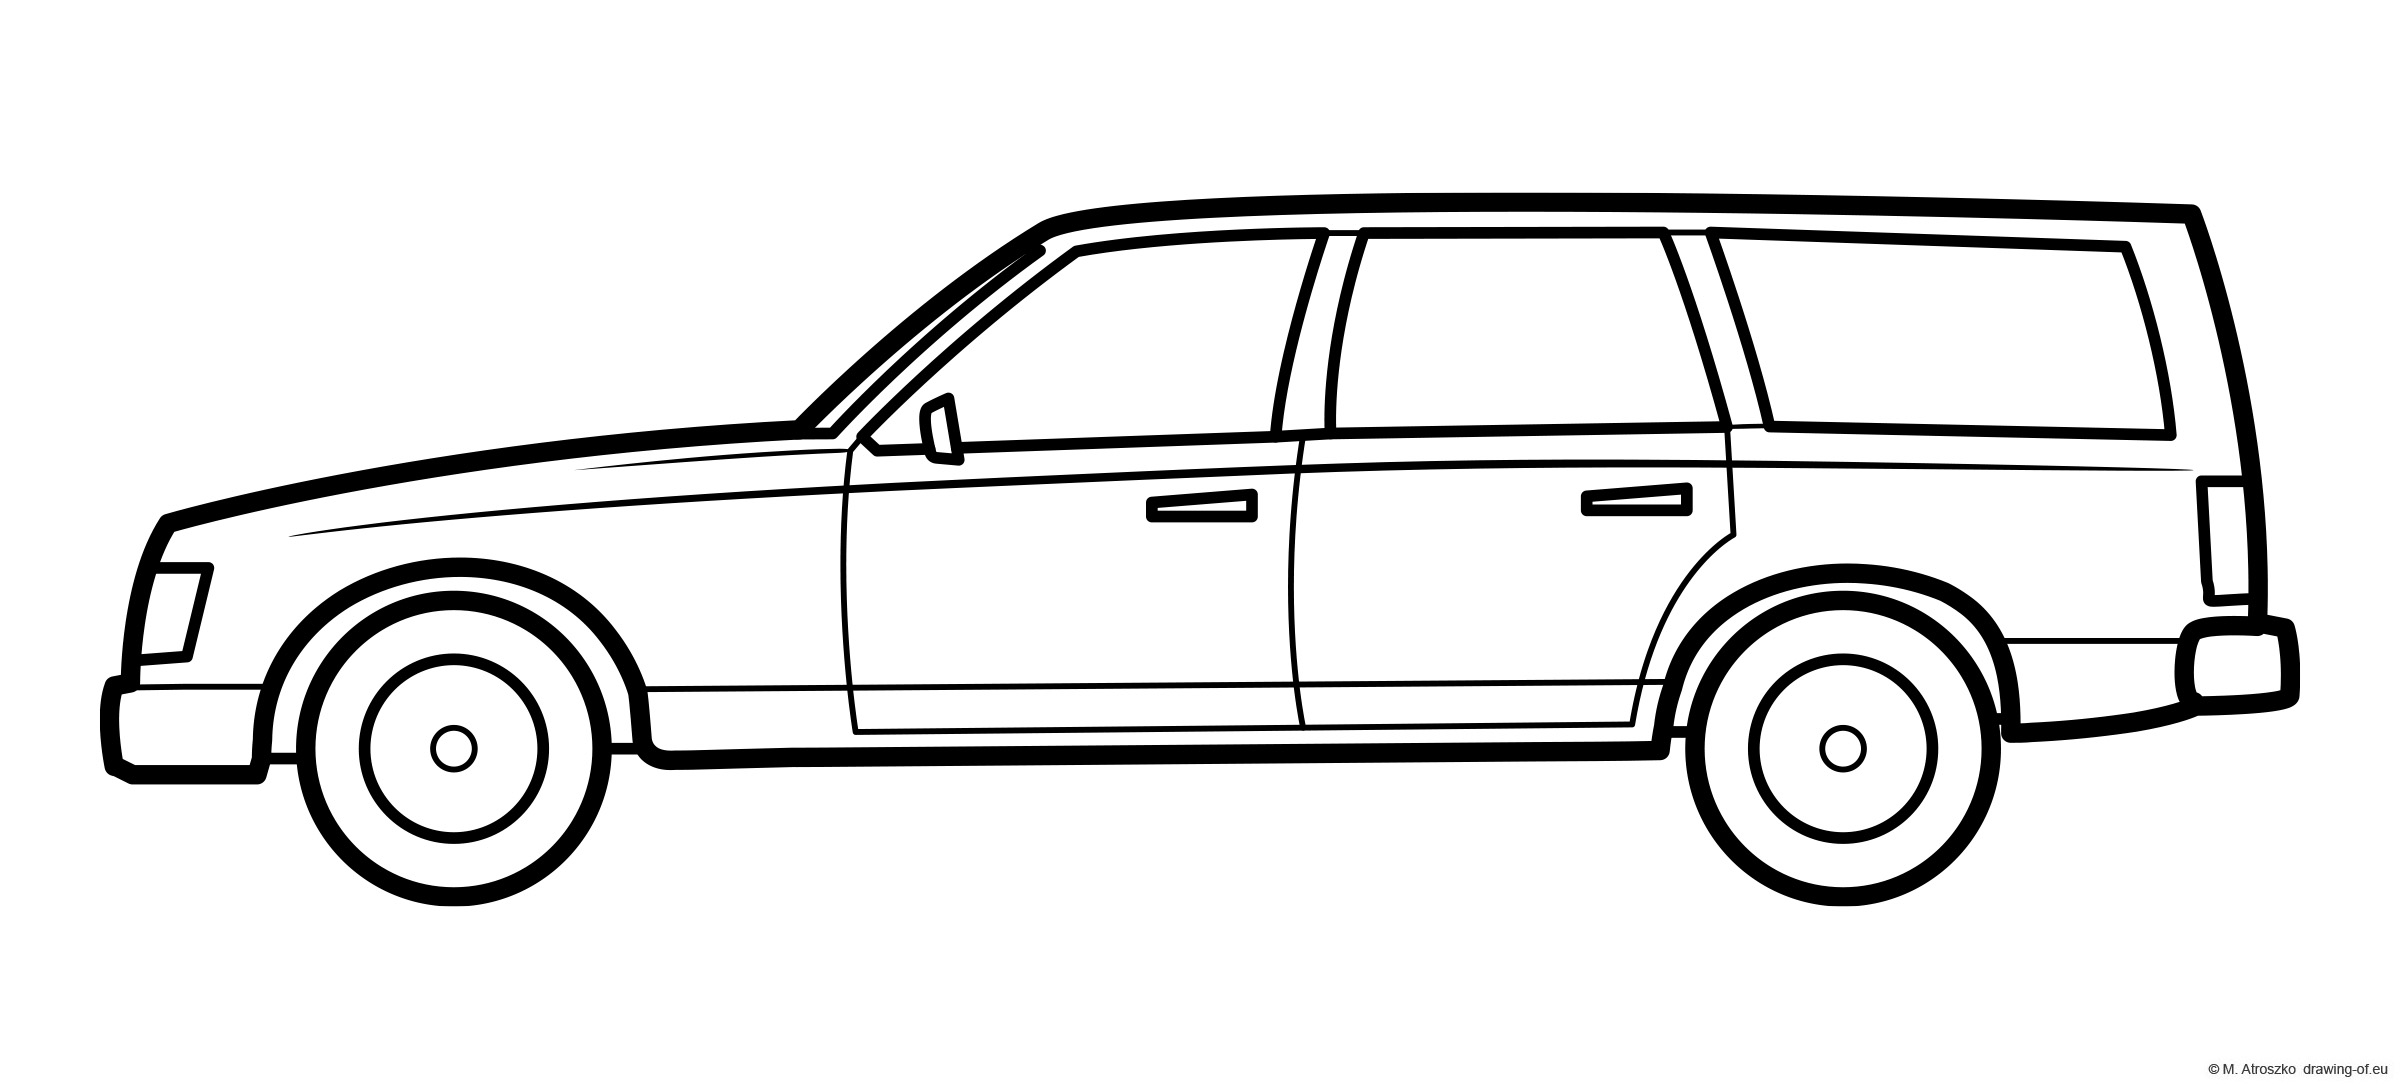 Combi car coloring page